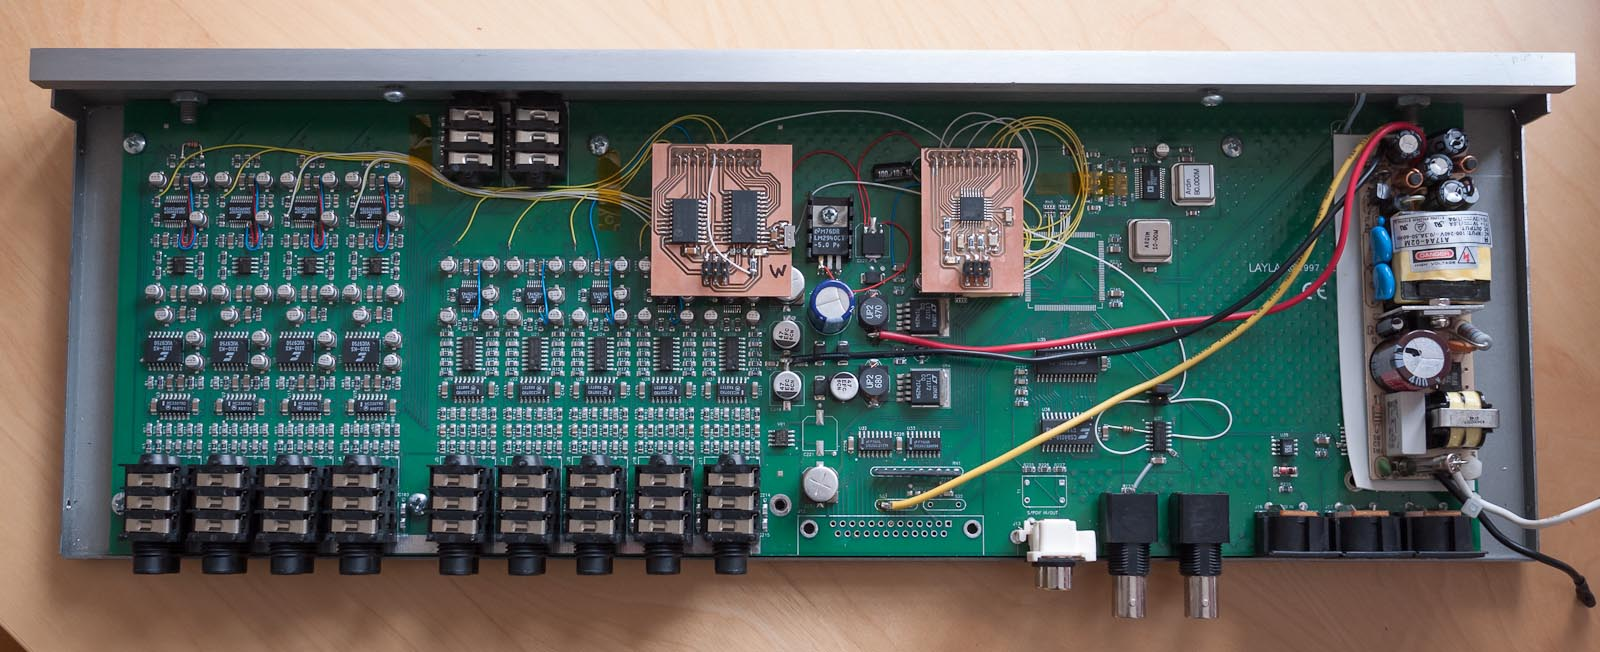 adat modification for the layla converters